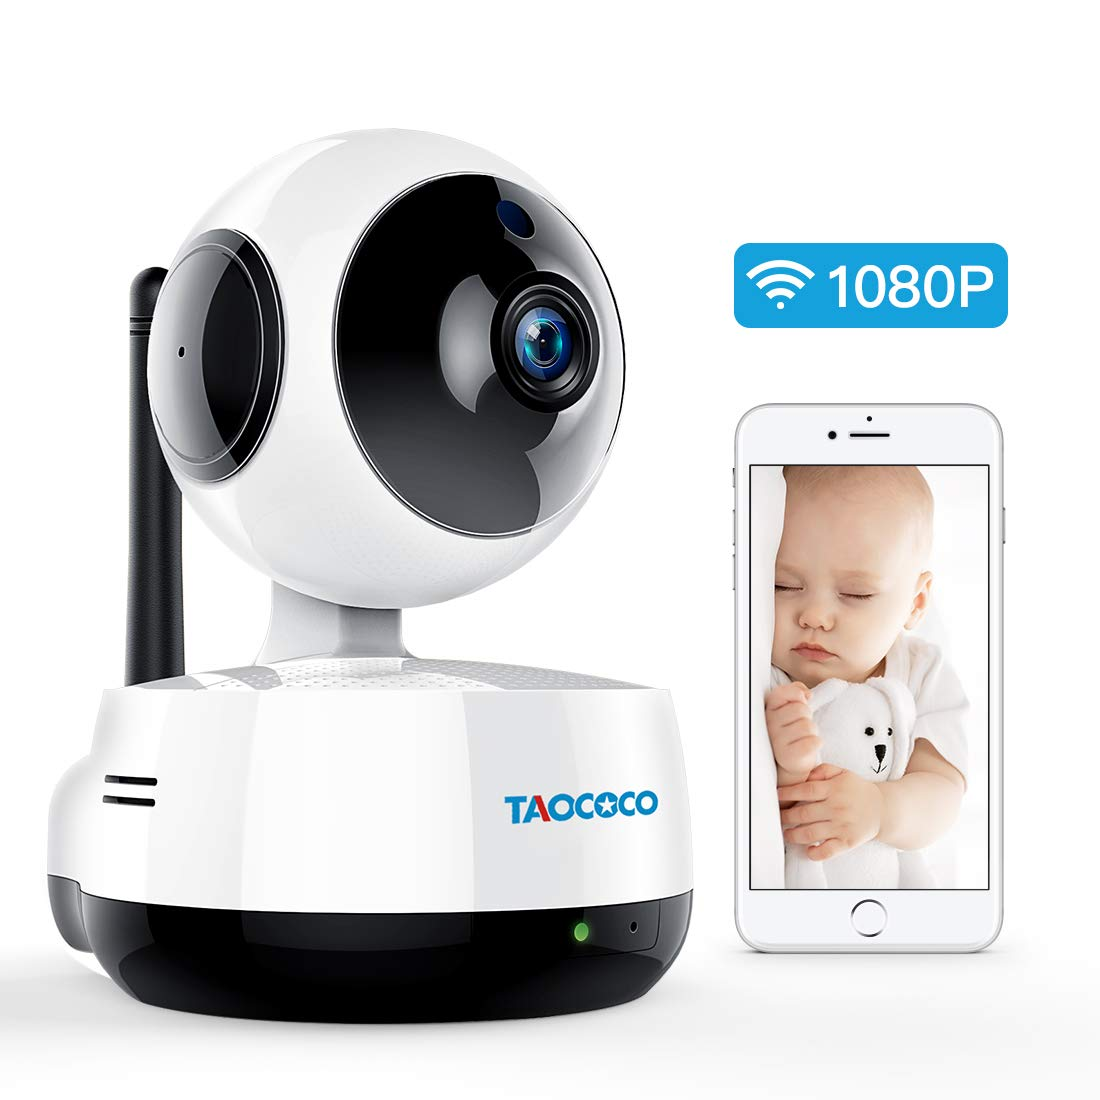 TAOCOCO Wireless IP Camera, 1080P HD WiFi Security Camera, Baby Monitor Home Dome Camera for Pet/Baby/Elder, Nanny Cam with Pan/Tilt, Motion Detection, IR Night Vision, Two Way Audio